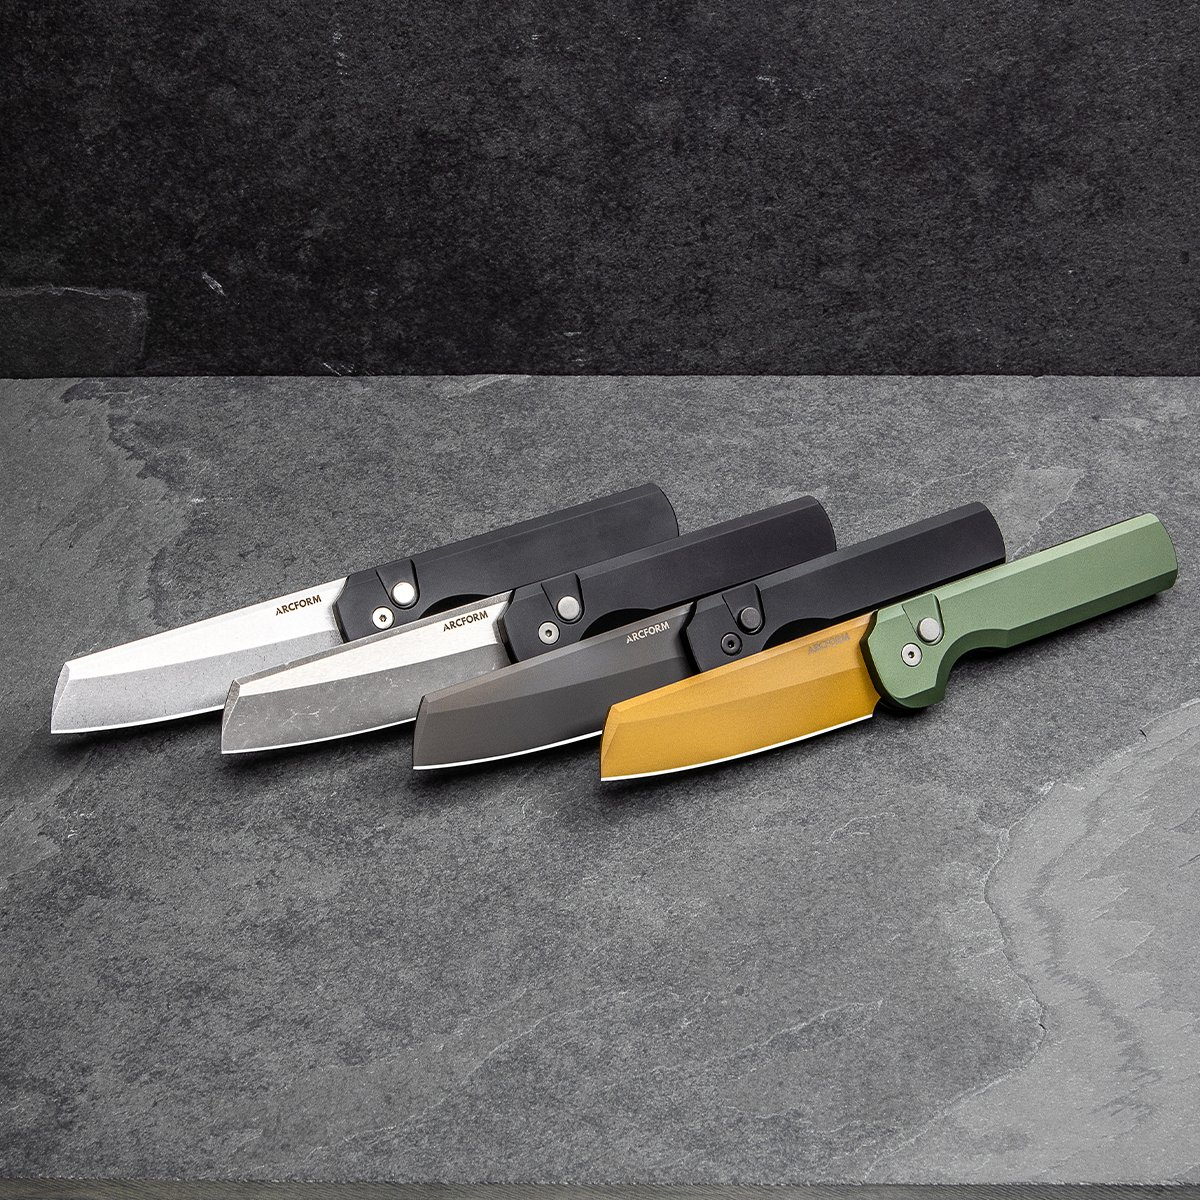 Now available! The @arcform Slimfoot auto is available in these four colorways! These beauties are a designed by Geoff Blauvelt and built by Protech. Link below!  http://bit.ly/2PzCsmb  #bladehq #knifelife #knives #arcform #slimfoot #slimfootauto #tuffknives #edc #edcgear pic.twitter.com/2bqIFgTIw6